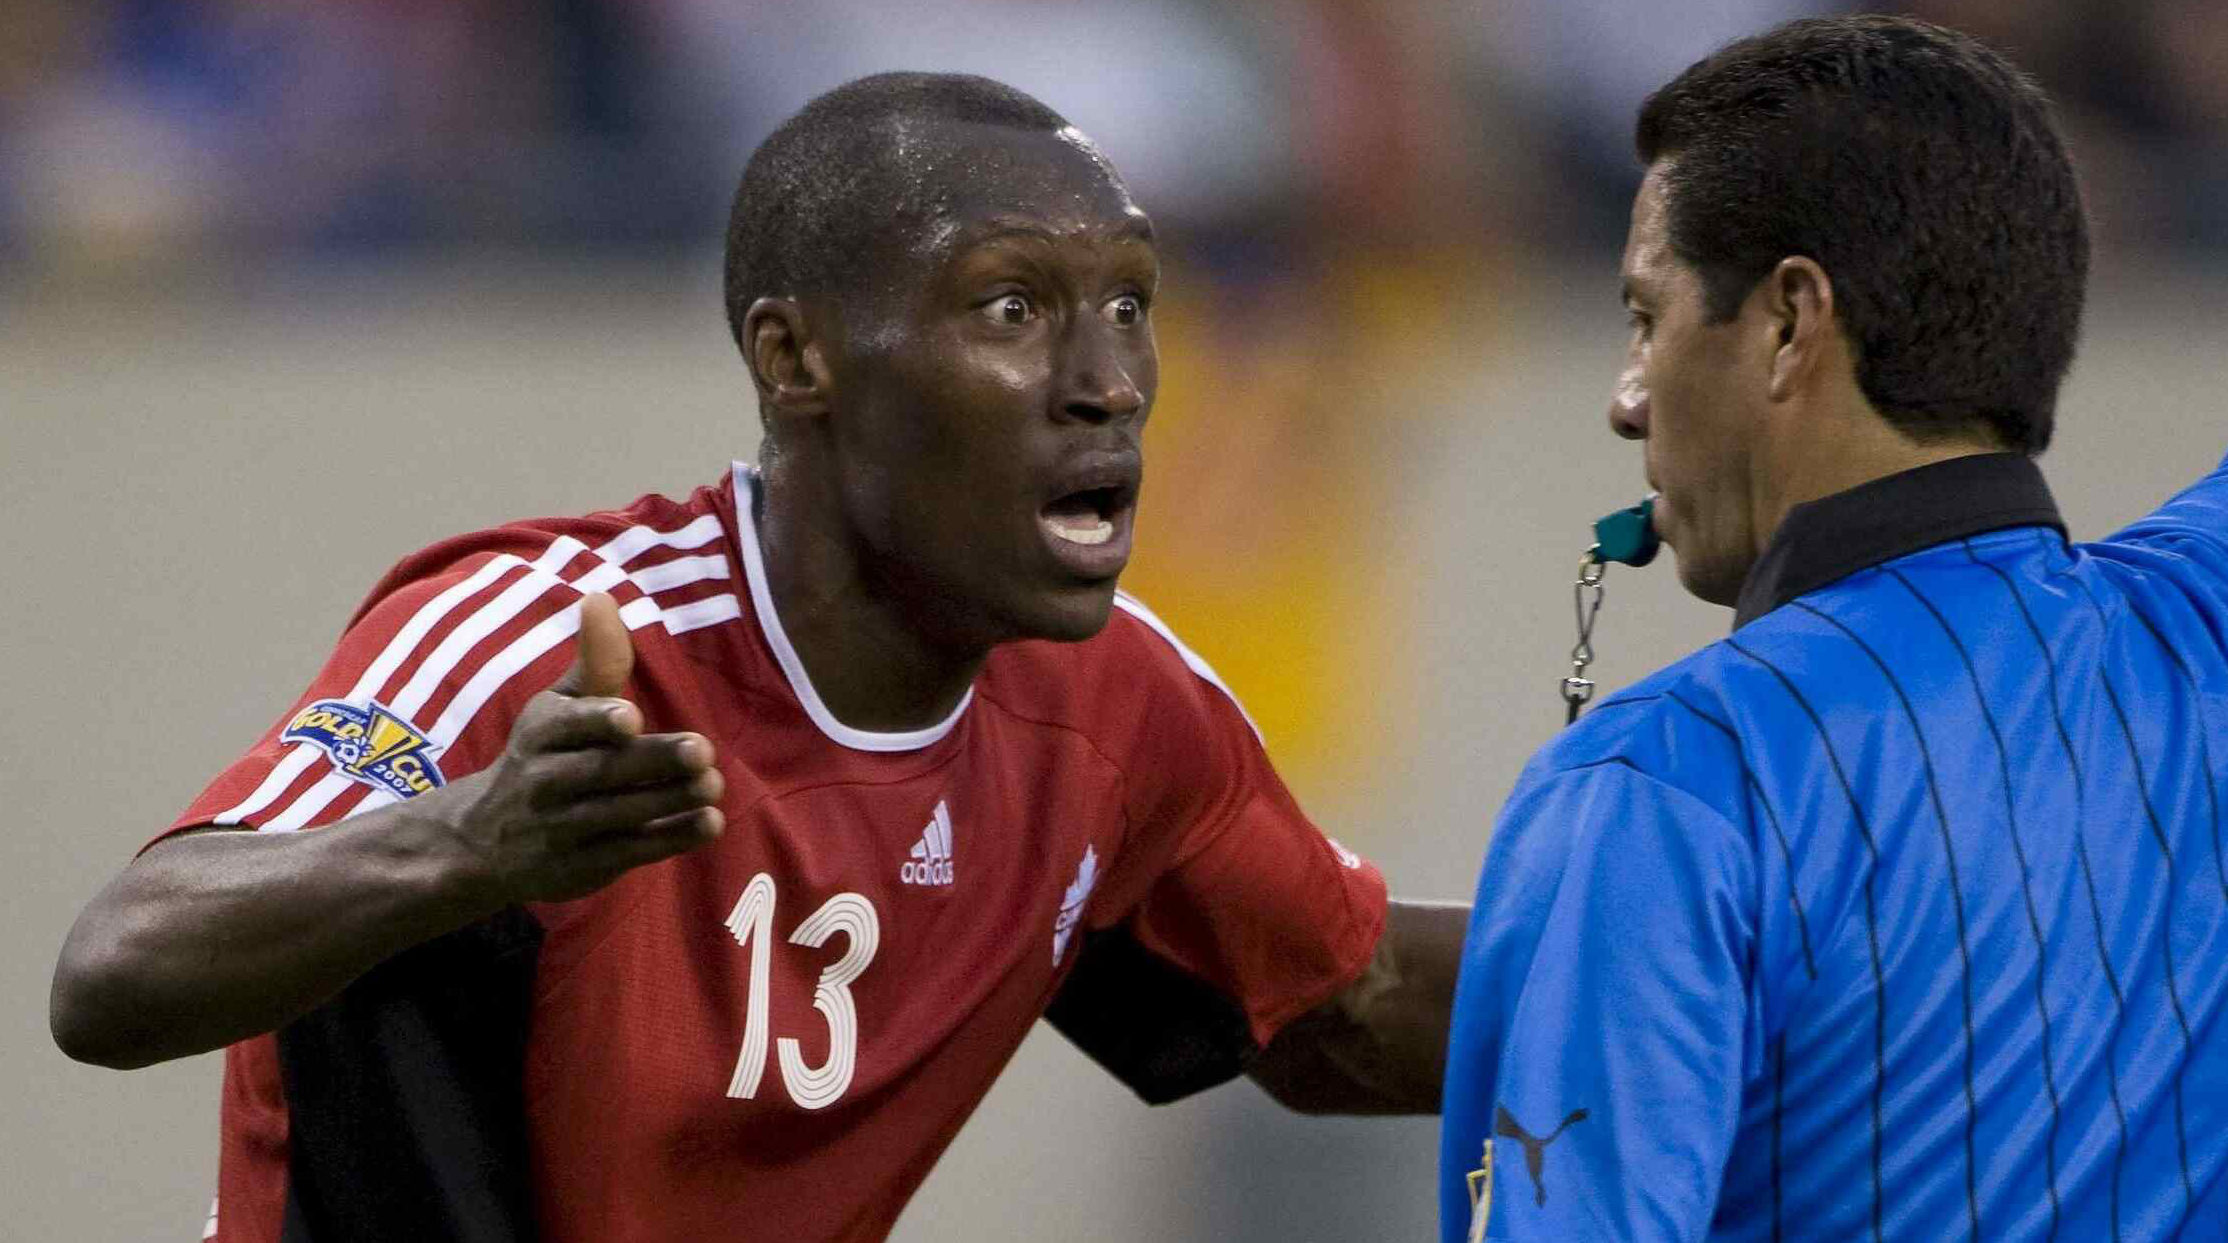 SOCCER/FUTBOL COPA DE ORO 2007 CANADA VS USA SEMIFINALES MEXSPORT DIGITAL IMAGE 21 June 2007: Action photo of main referee Armando Archundia and Atiba Hutchinson of Canada, during the semifinal game of the Gold Cup 2007 at the Soldier Field Stadium of Chicago, Illinois./Foto de accion de Armando Archundia arbitro central y Atiba Hutchinson de Canada, durante juego de semifinal de la Copa de Oro 2007 en el Soldier Field Stadium de Chicago,Illinois. MEXSPORT/RICK DOLE